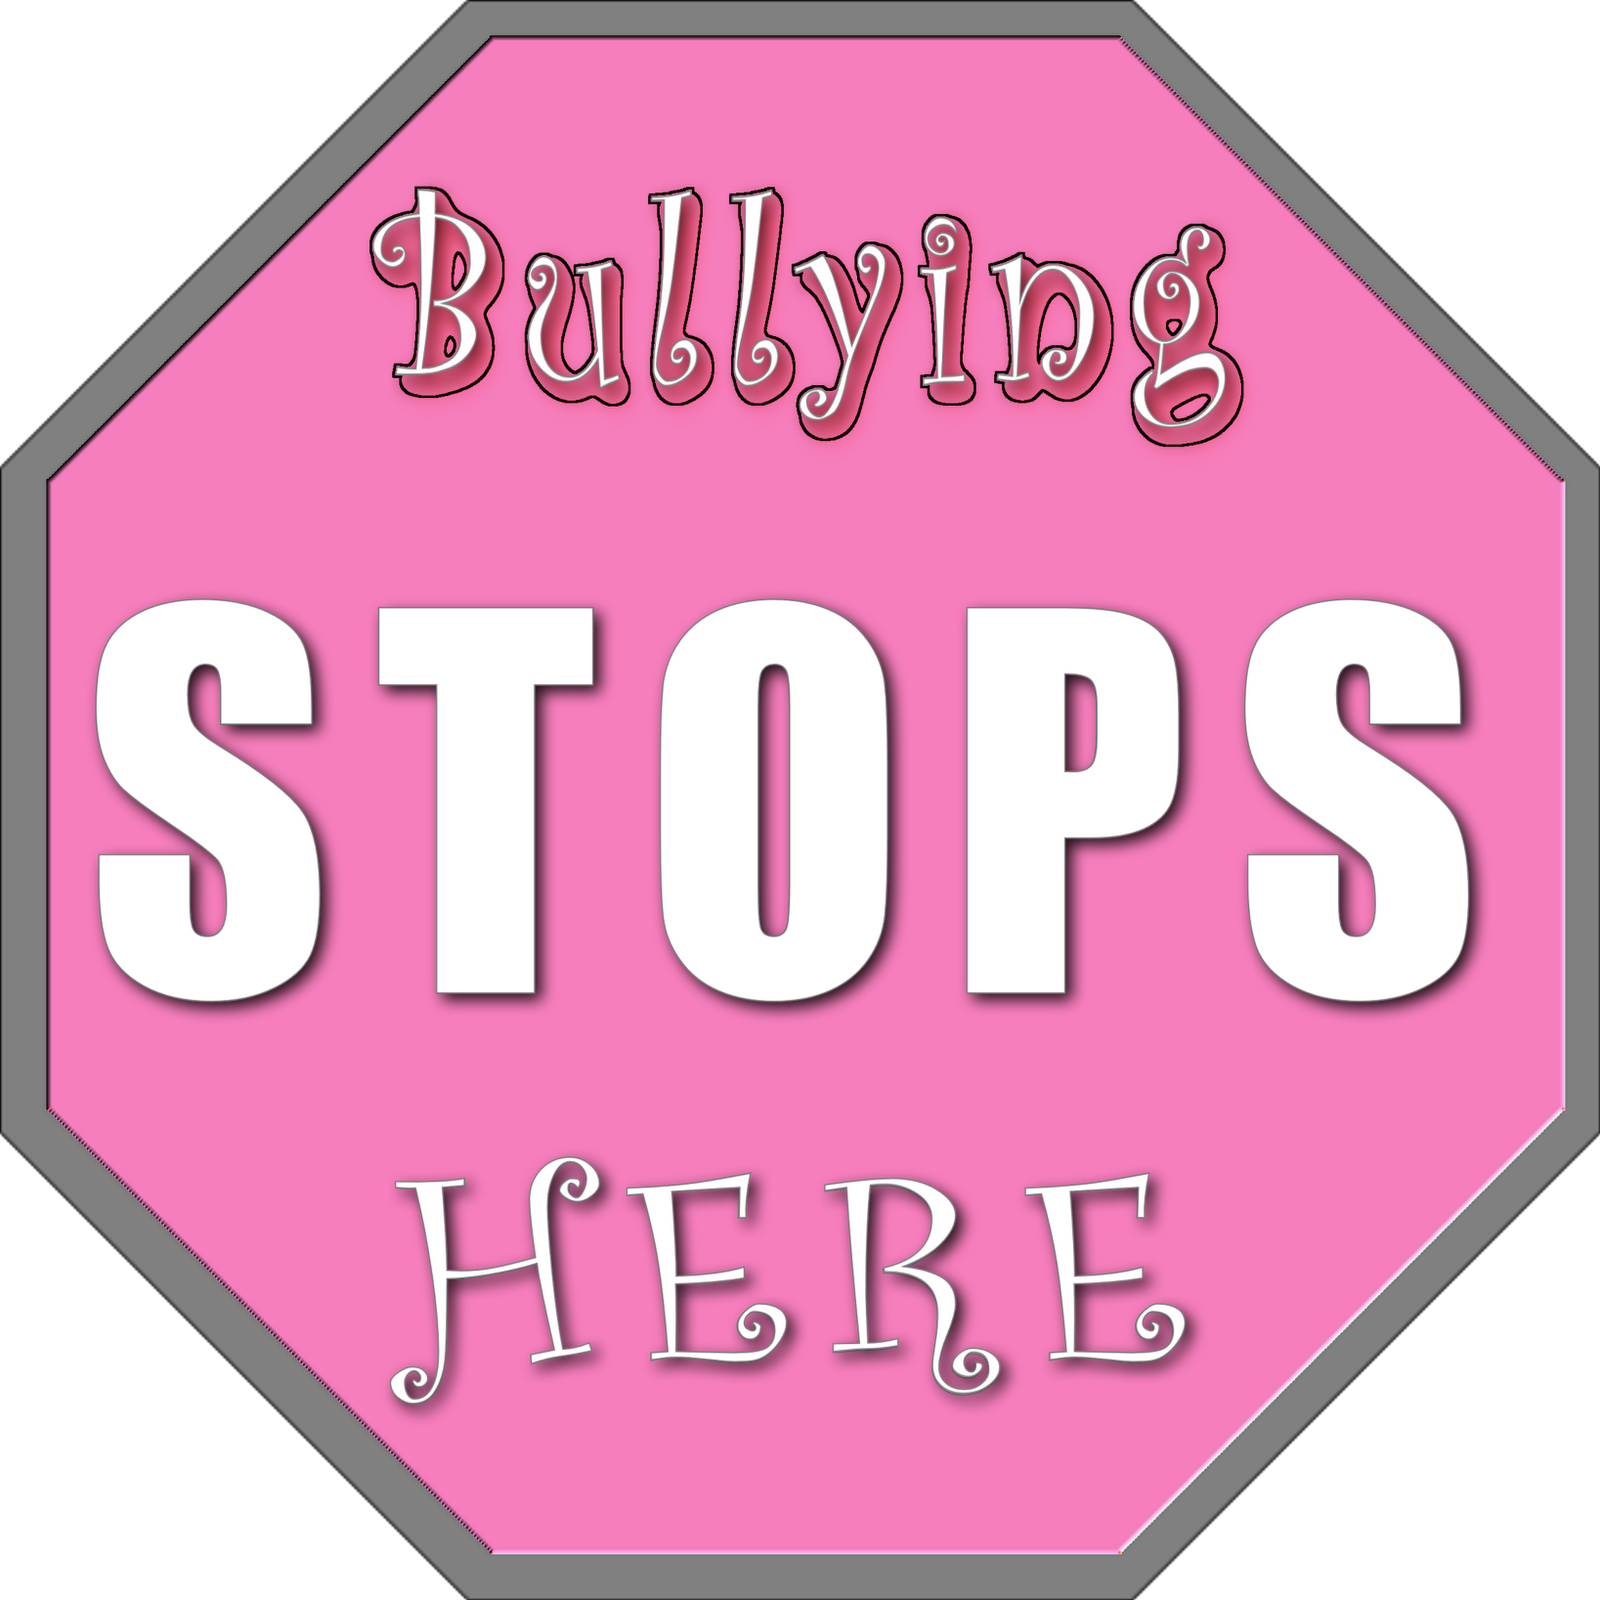 Pink Shirt Day - The Bullying Stops Here: Pink Shirt Day Logos